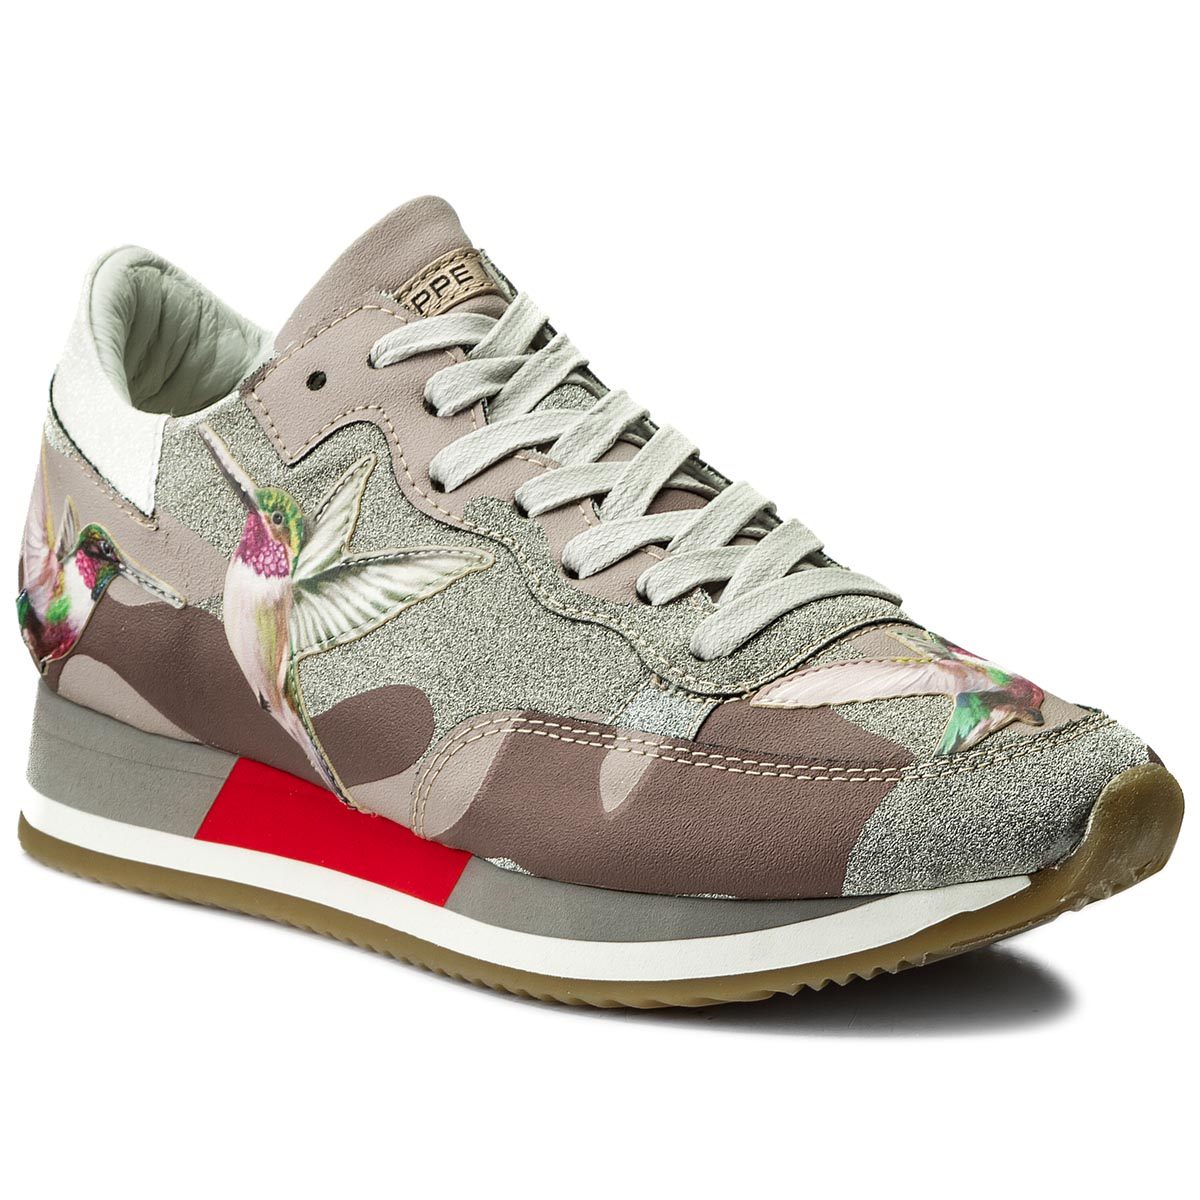 Sneakersy PHILIPPE MODEL - Etoile TBLD BG03 Tropical Birds Mud Colibri